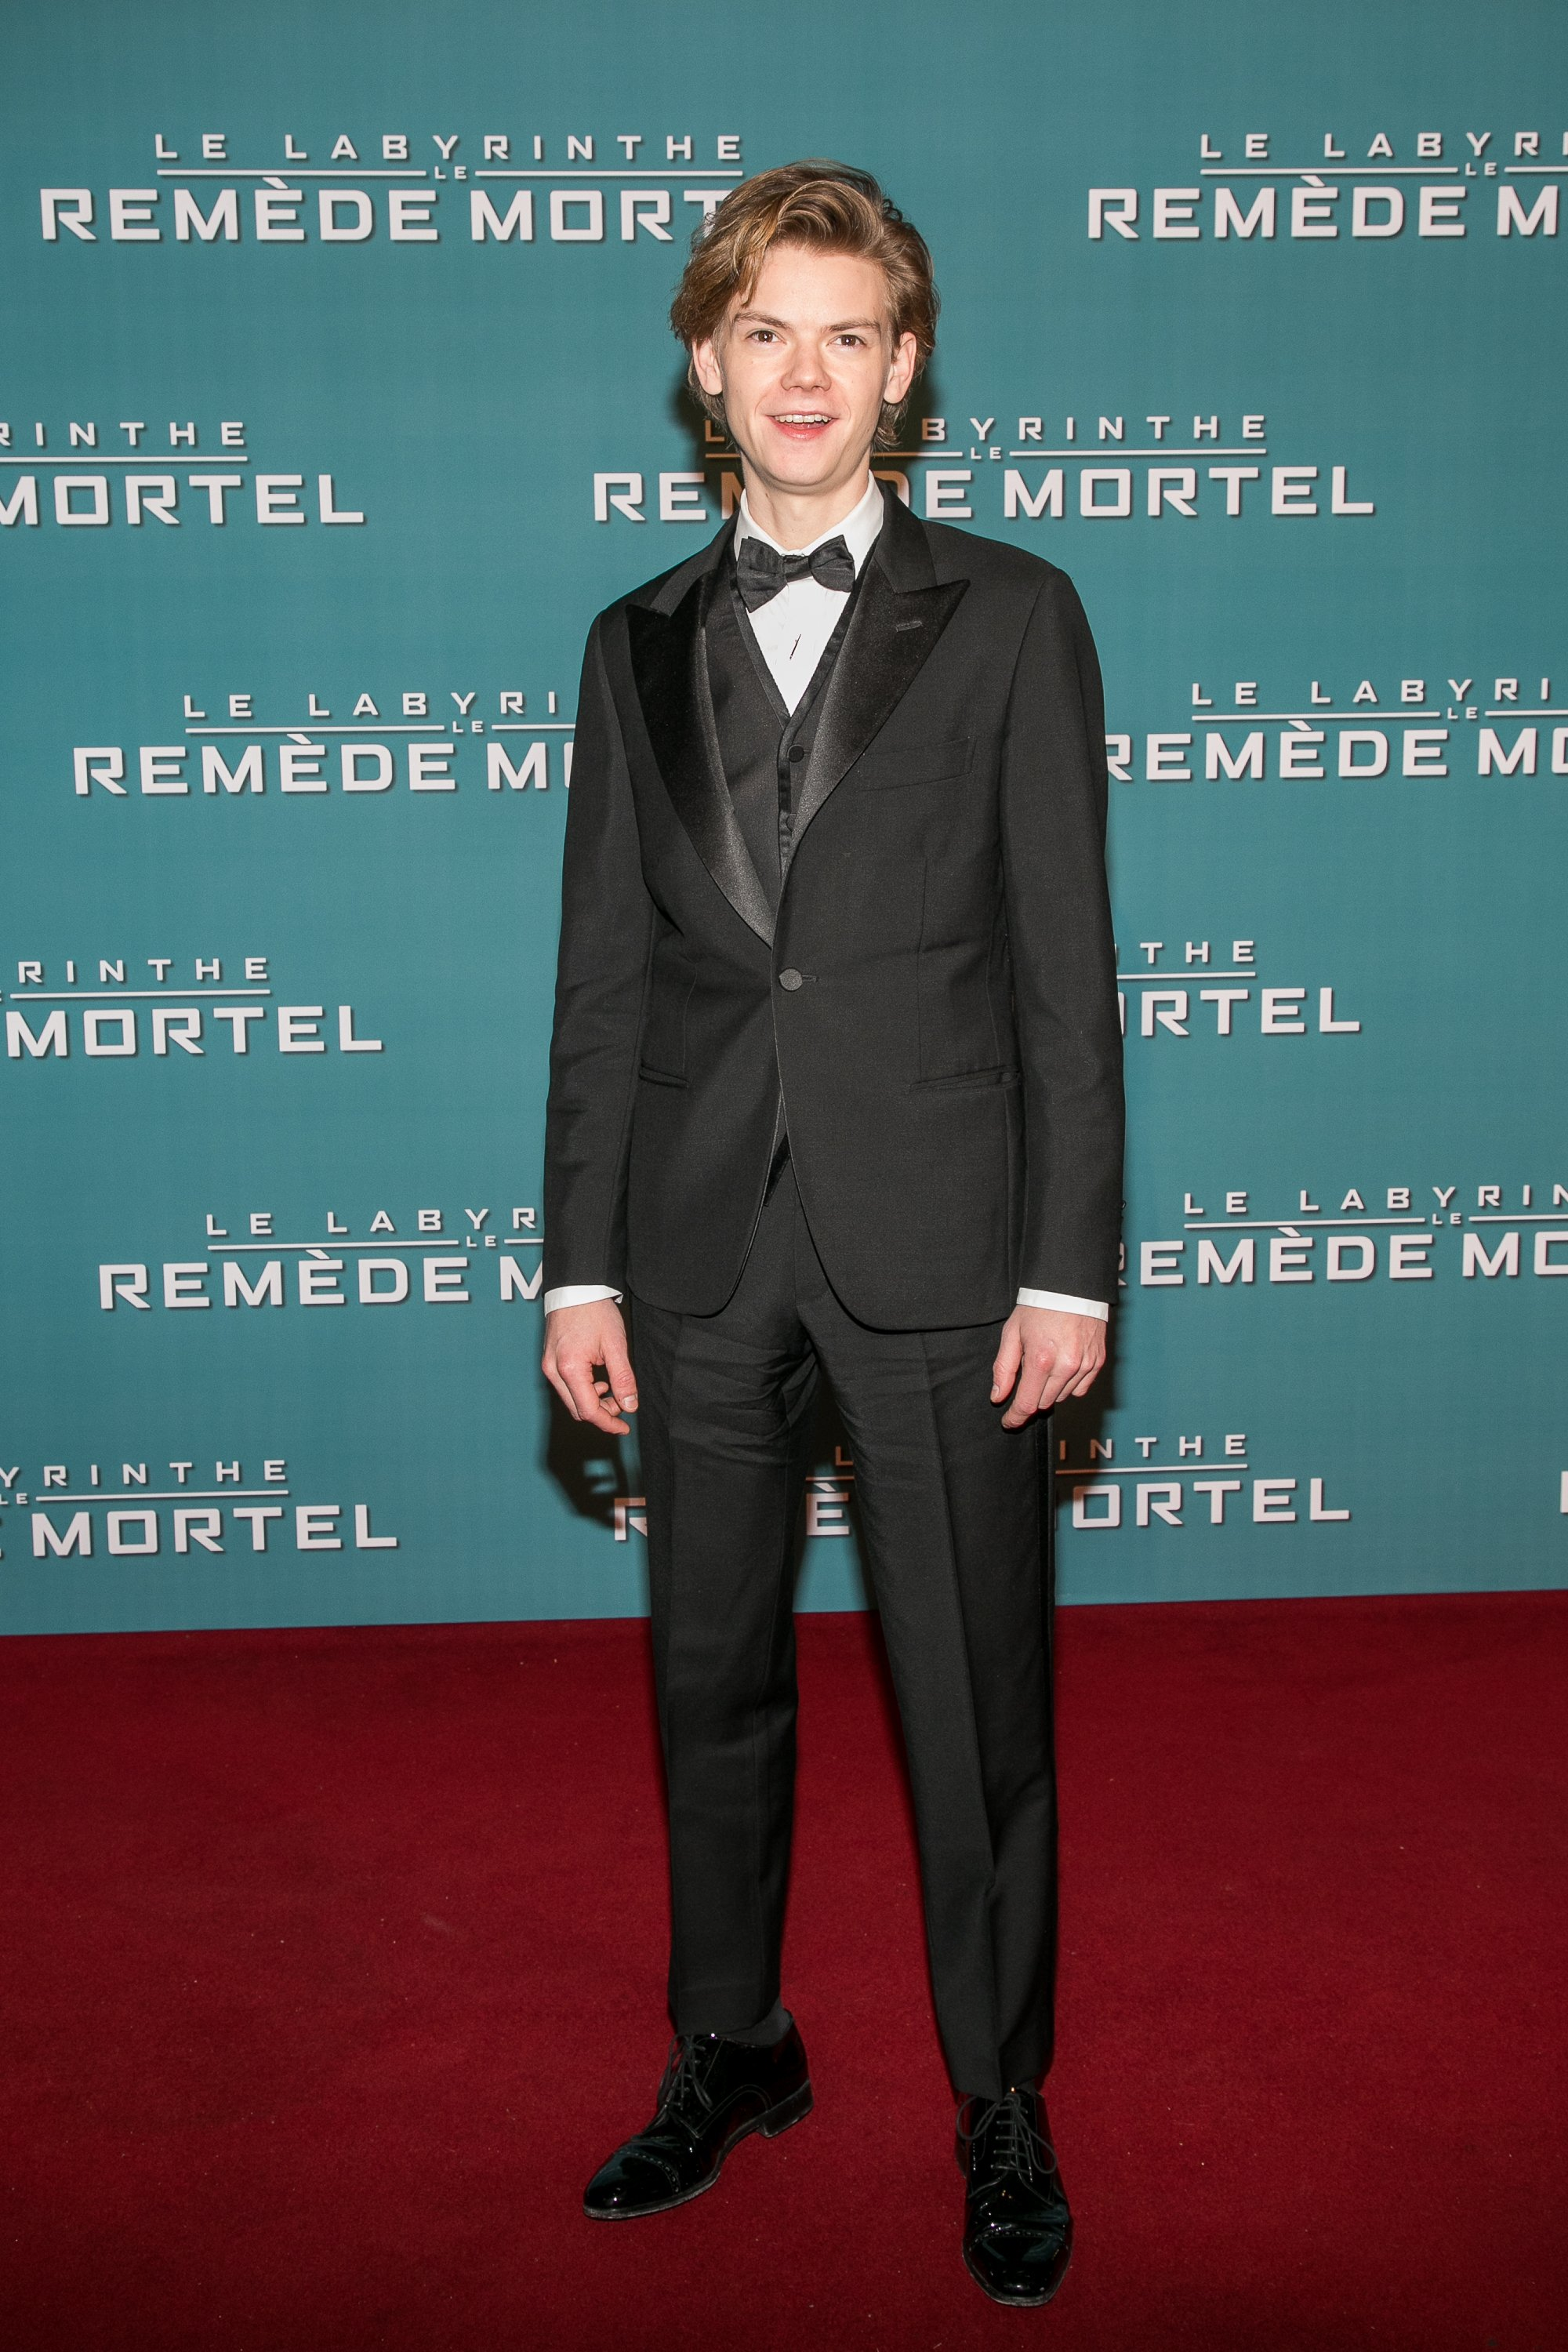 Thomas Brodie-Sangster attends the 'Maze Runner: The Death Cure' Premiere at Le Grand Rex on January 24, 2018 | Photo: Getty Images